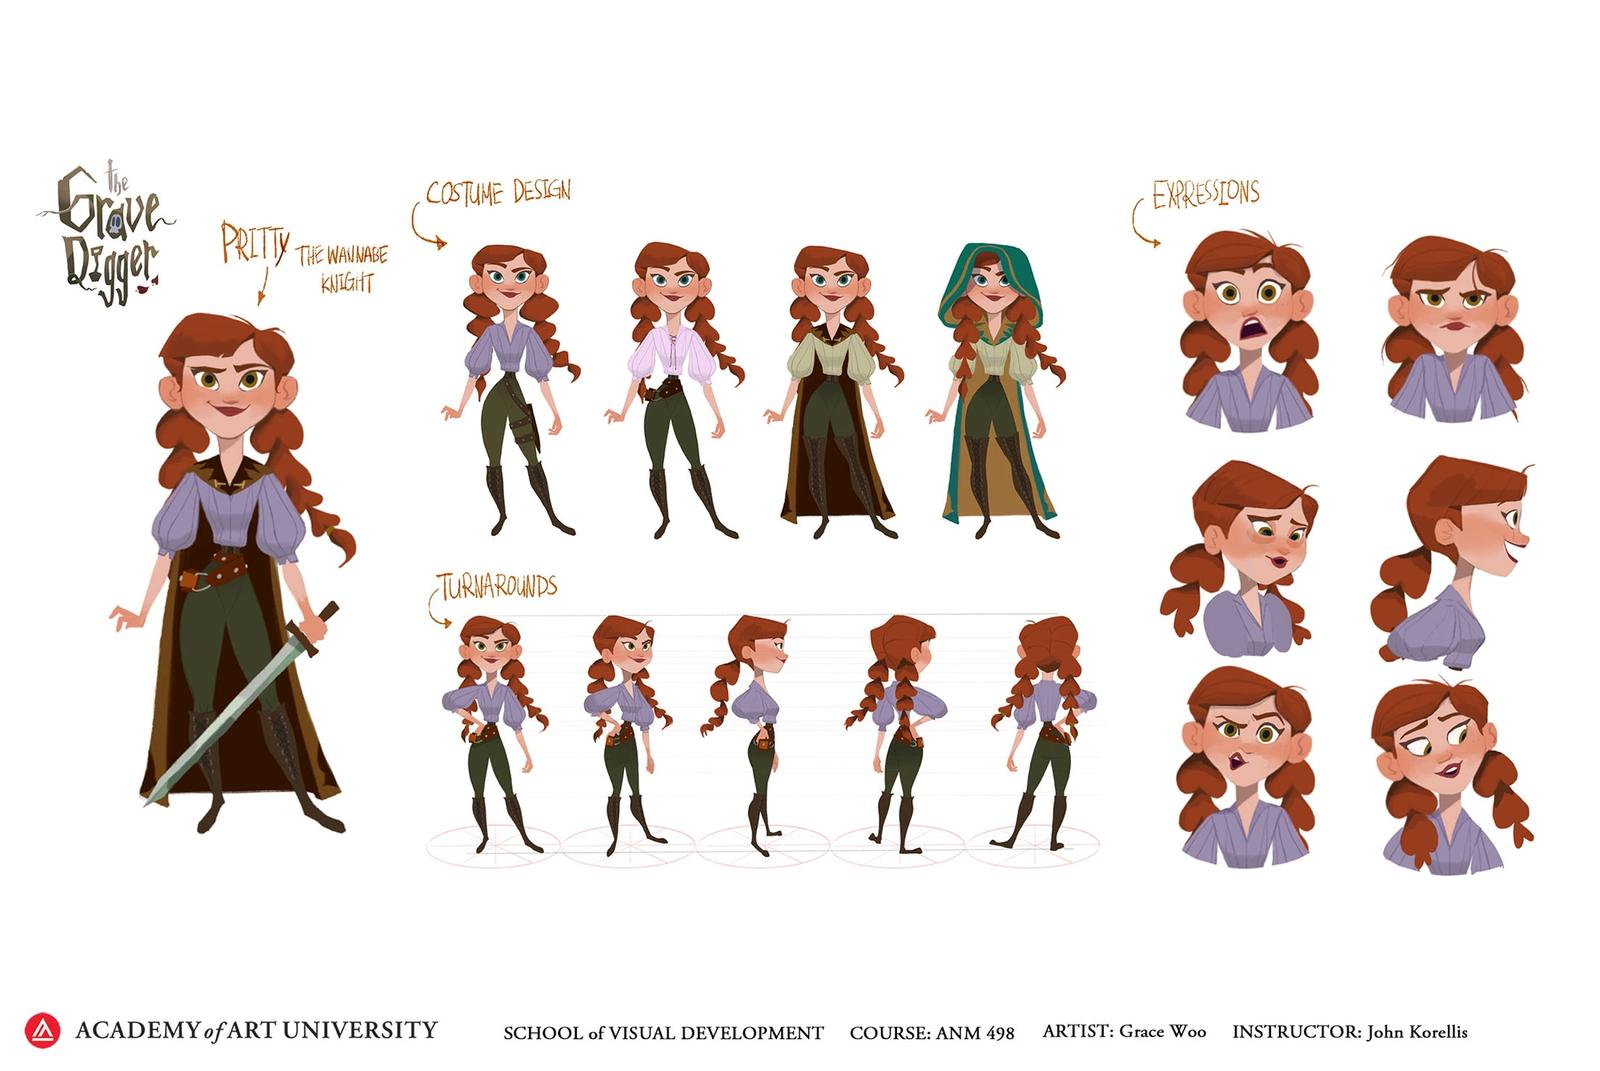 The Grave Digger Pritty Character Sheet - Grace Woo